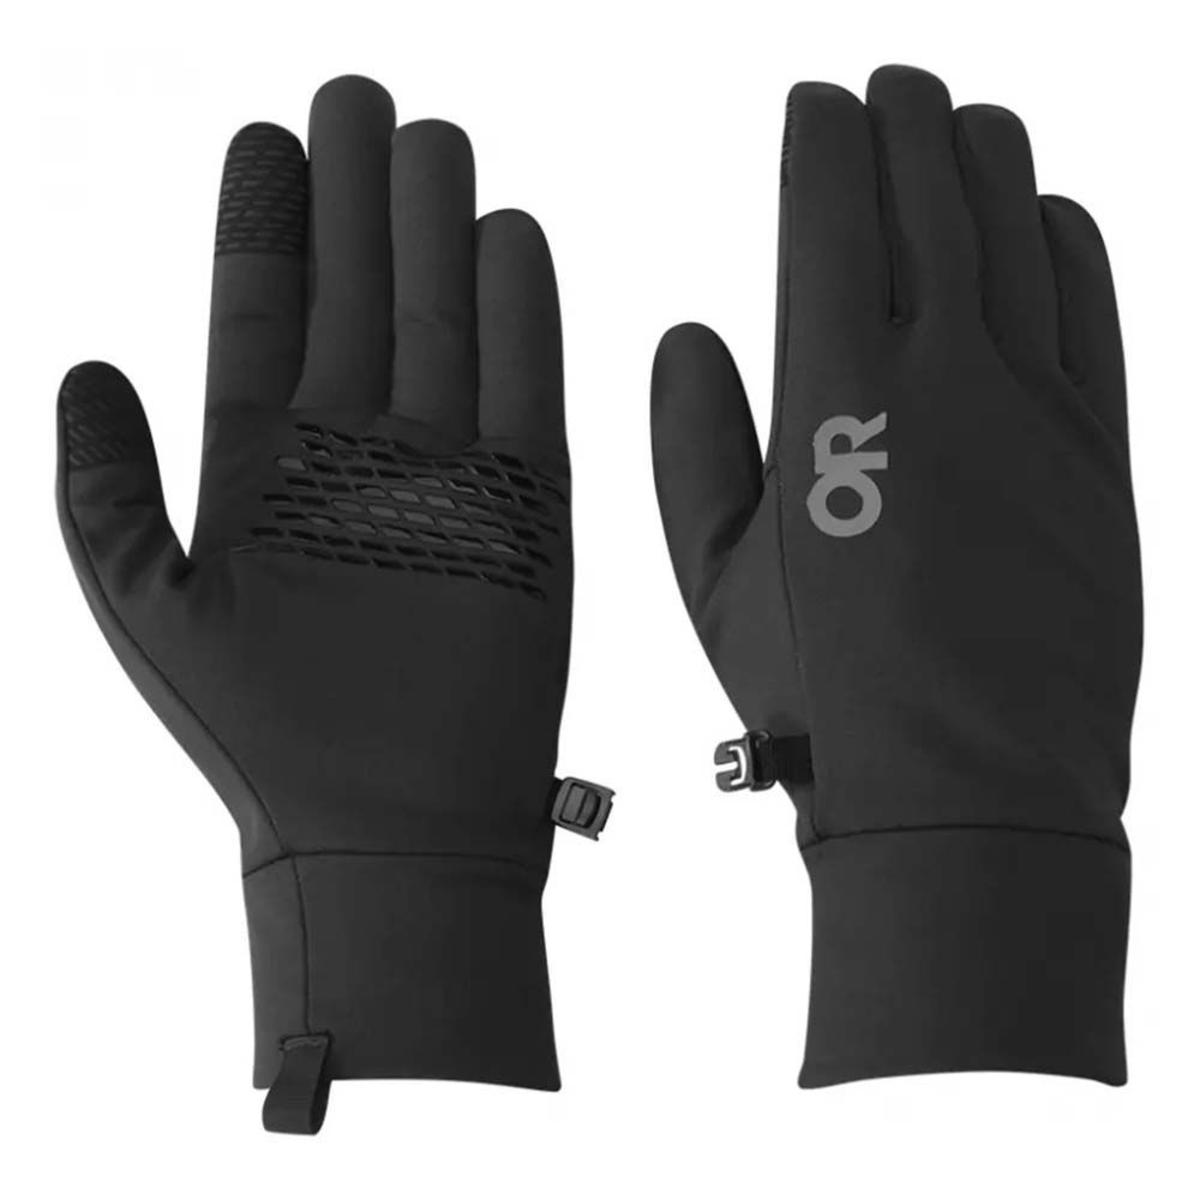 Outdoor Research Protective Essential Midweight Liner Gloves